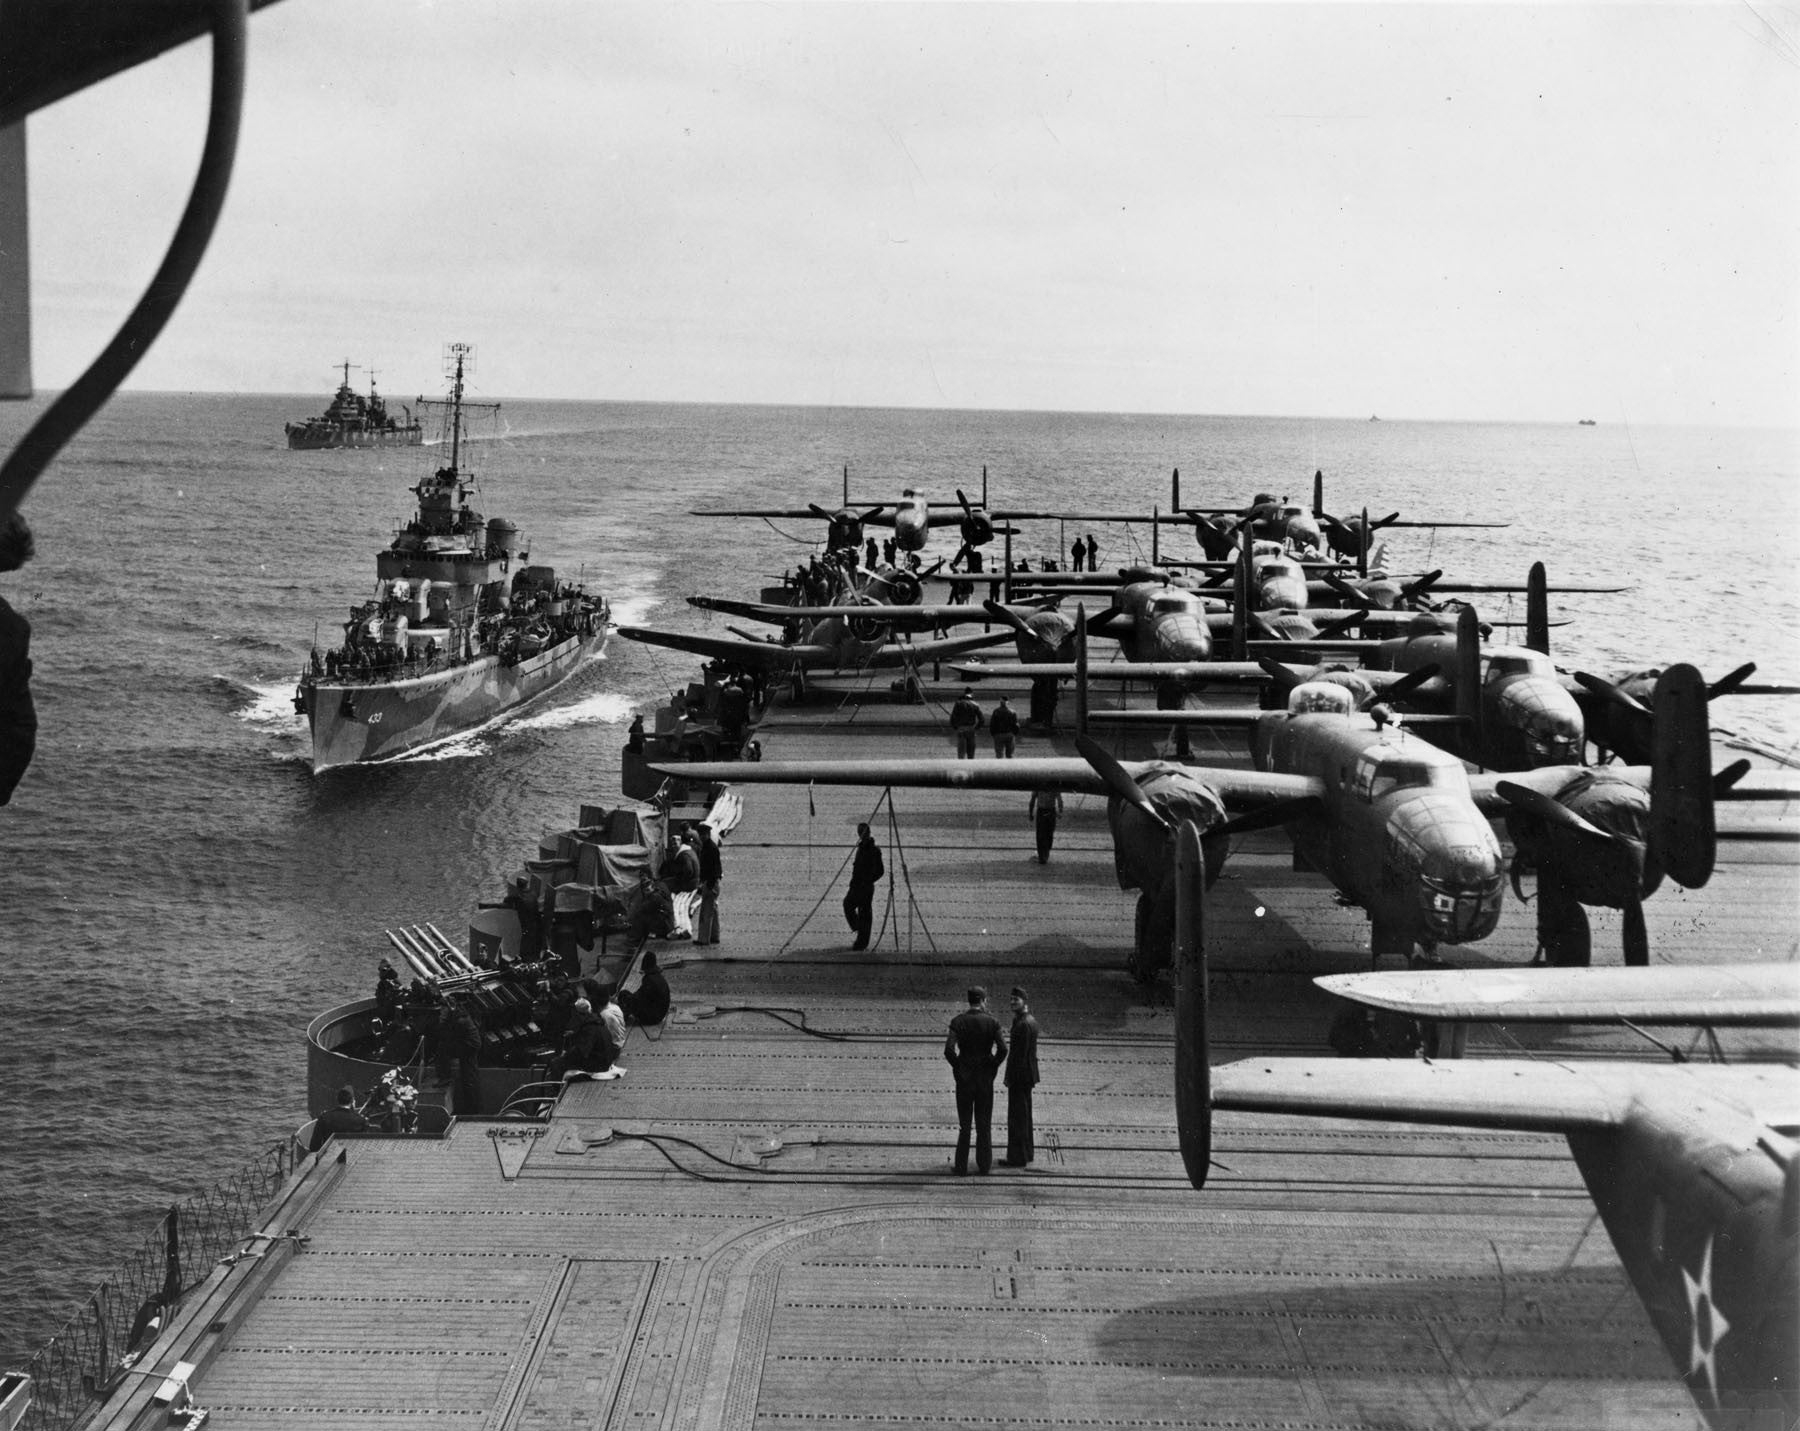 Honoring Doolittle Raid 75th Anniversary